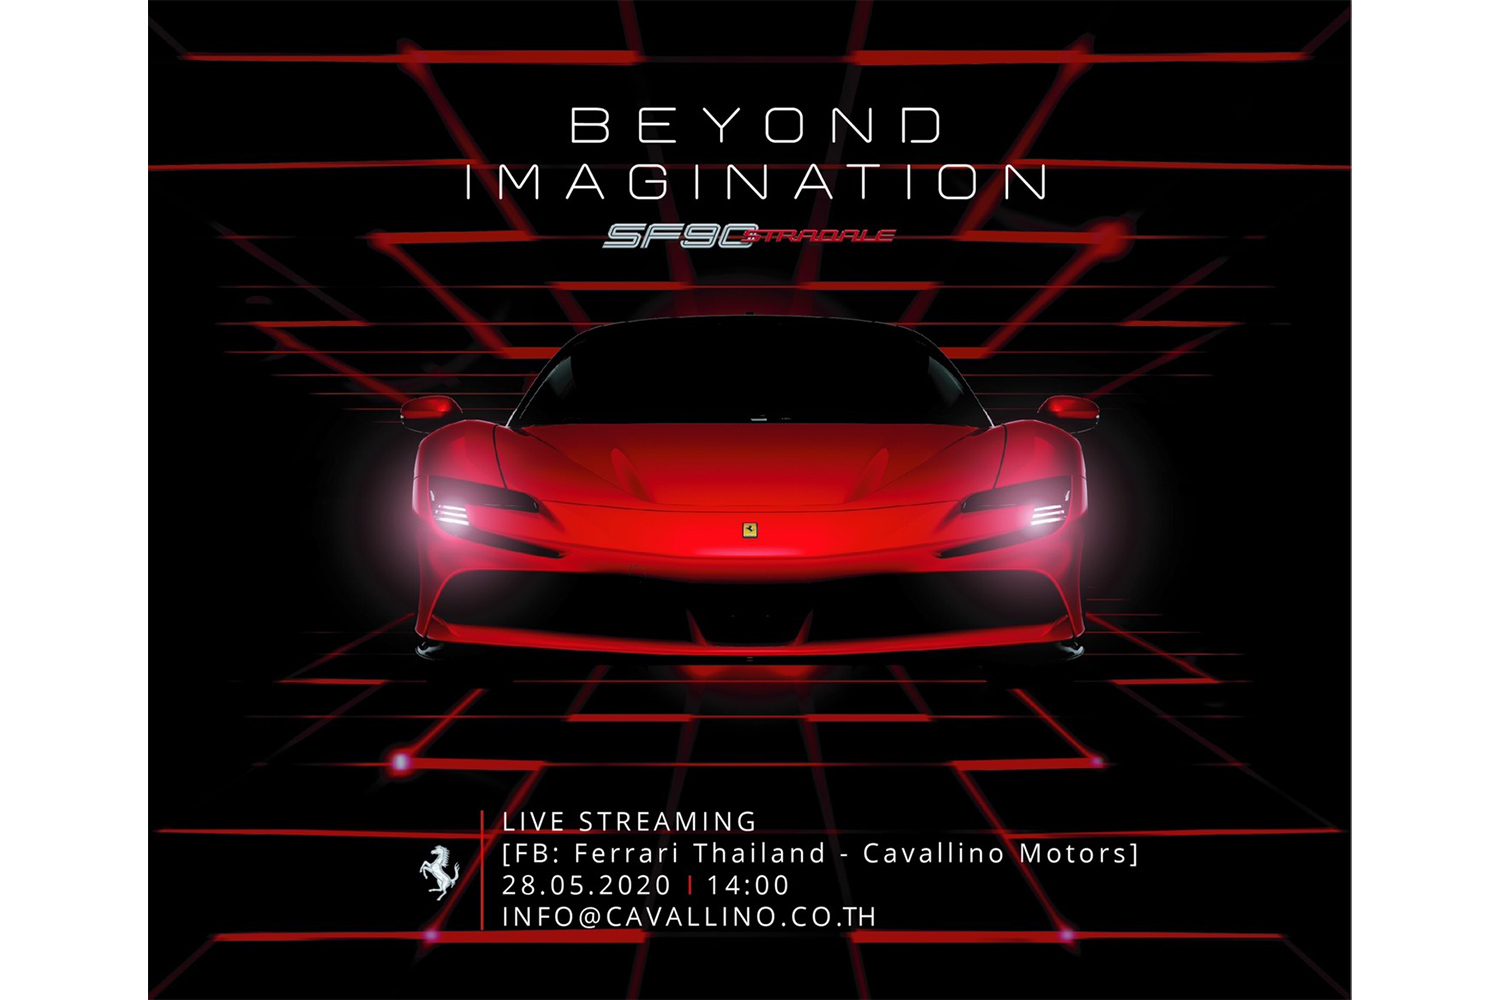 The Ferrari Sf90 Stradale The New Series Production Supercar Cavallino Motors To Unveil The Most Powerful Prancing Horse Car Ever